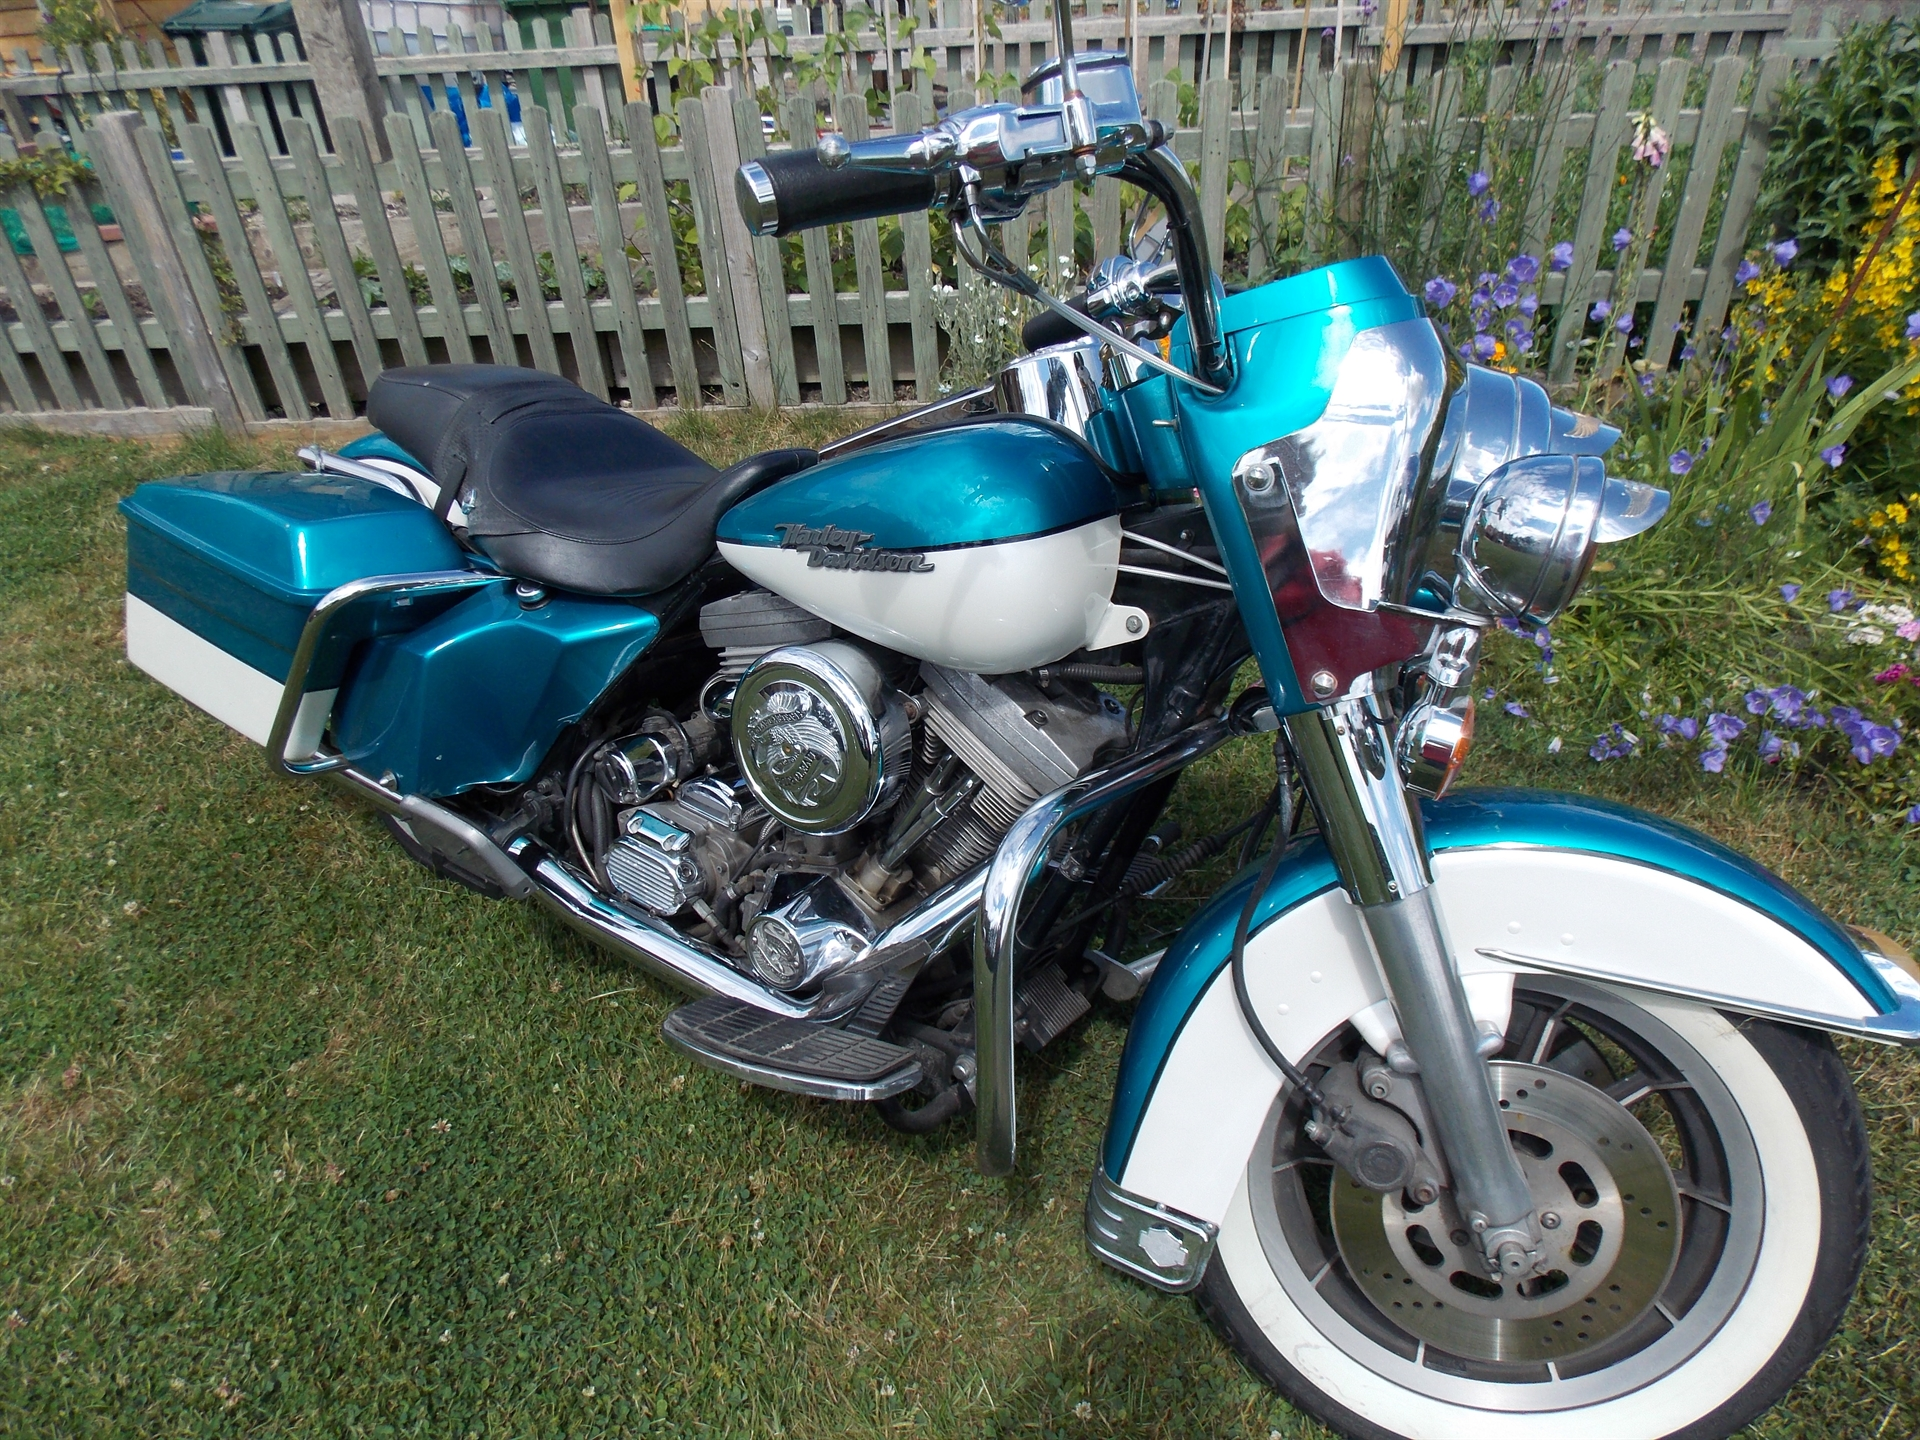 Harley Davidson To Be Auctioned At Cheffins Vintage Sale With Proceeds To The Nhs And Other Charities